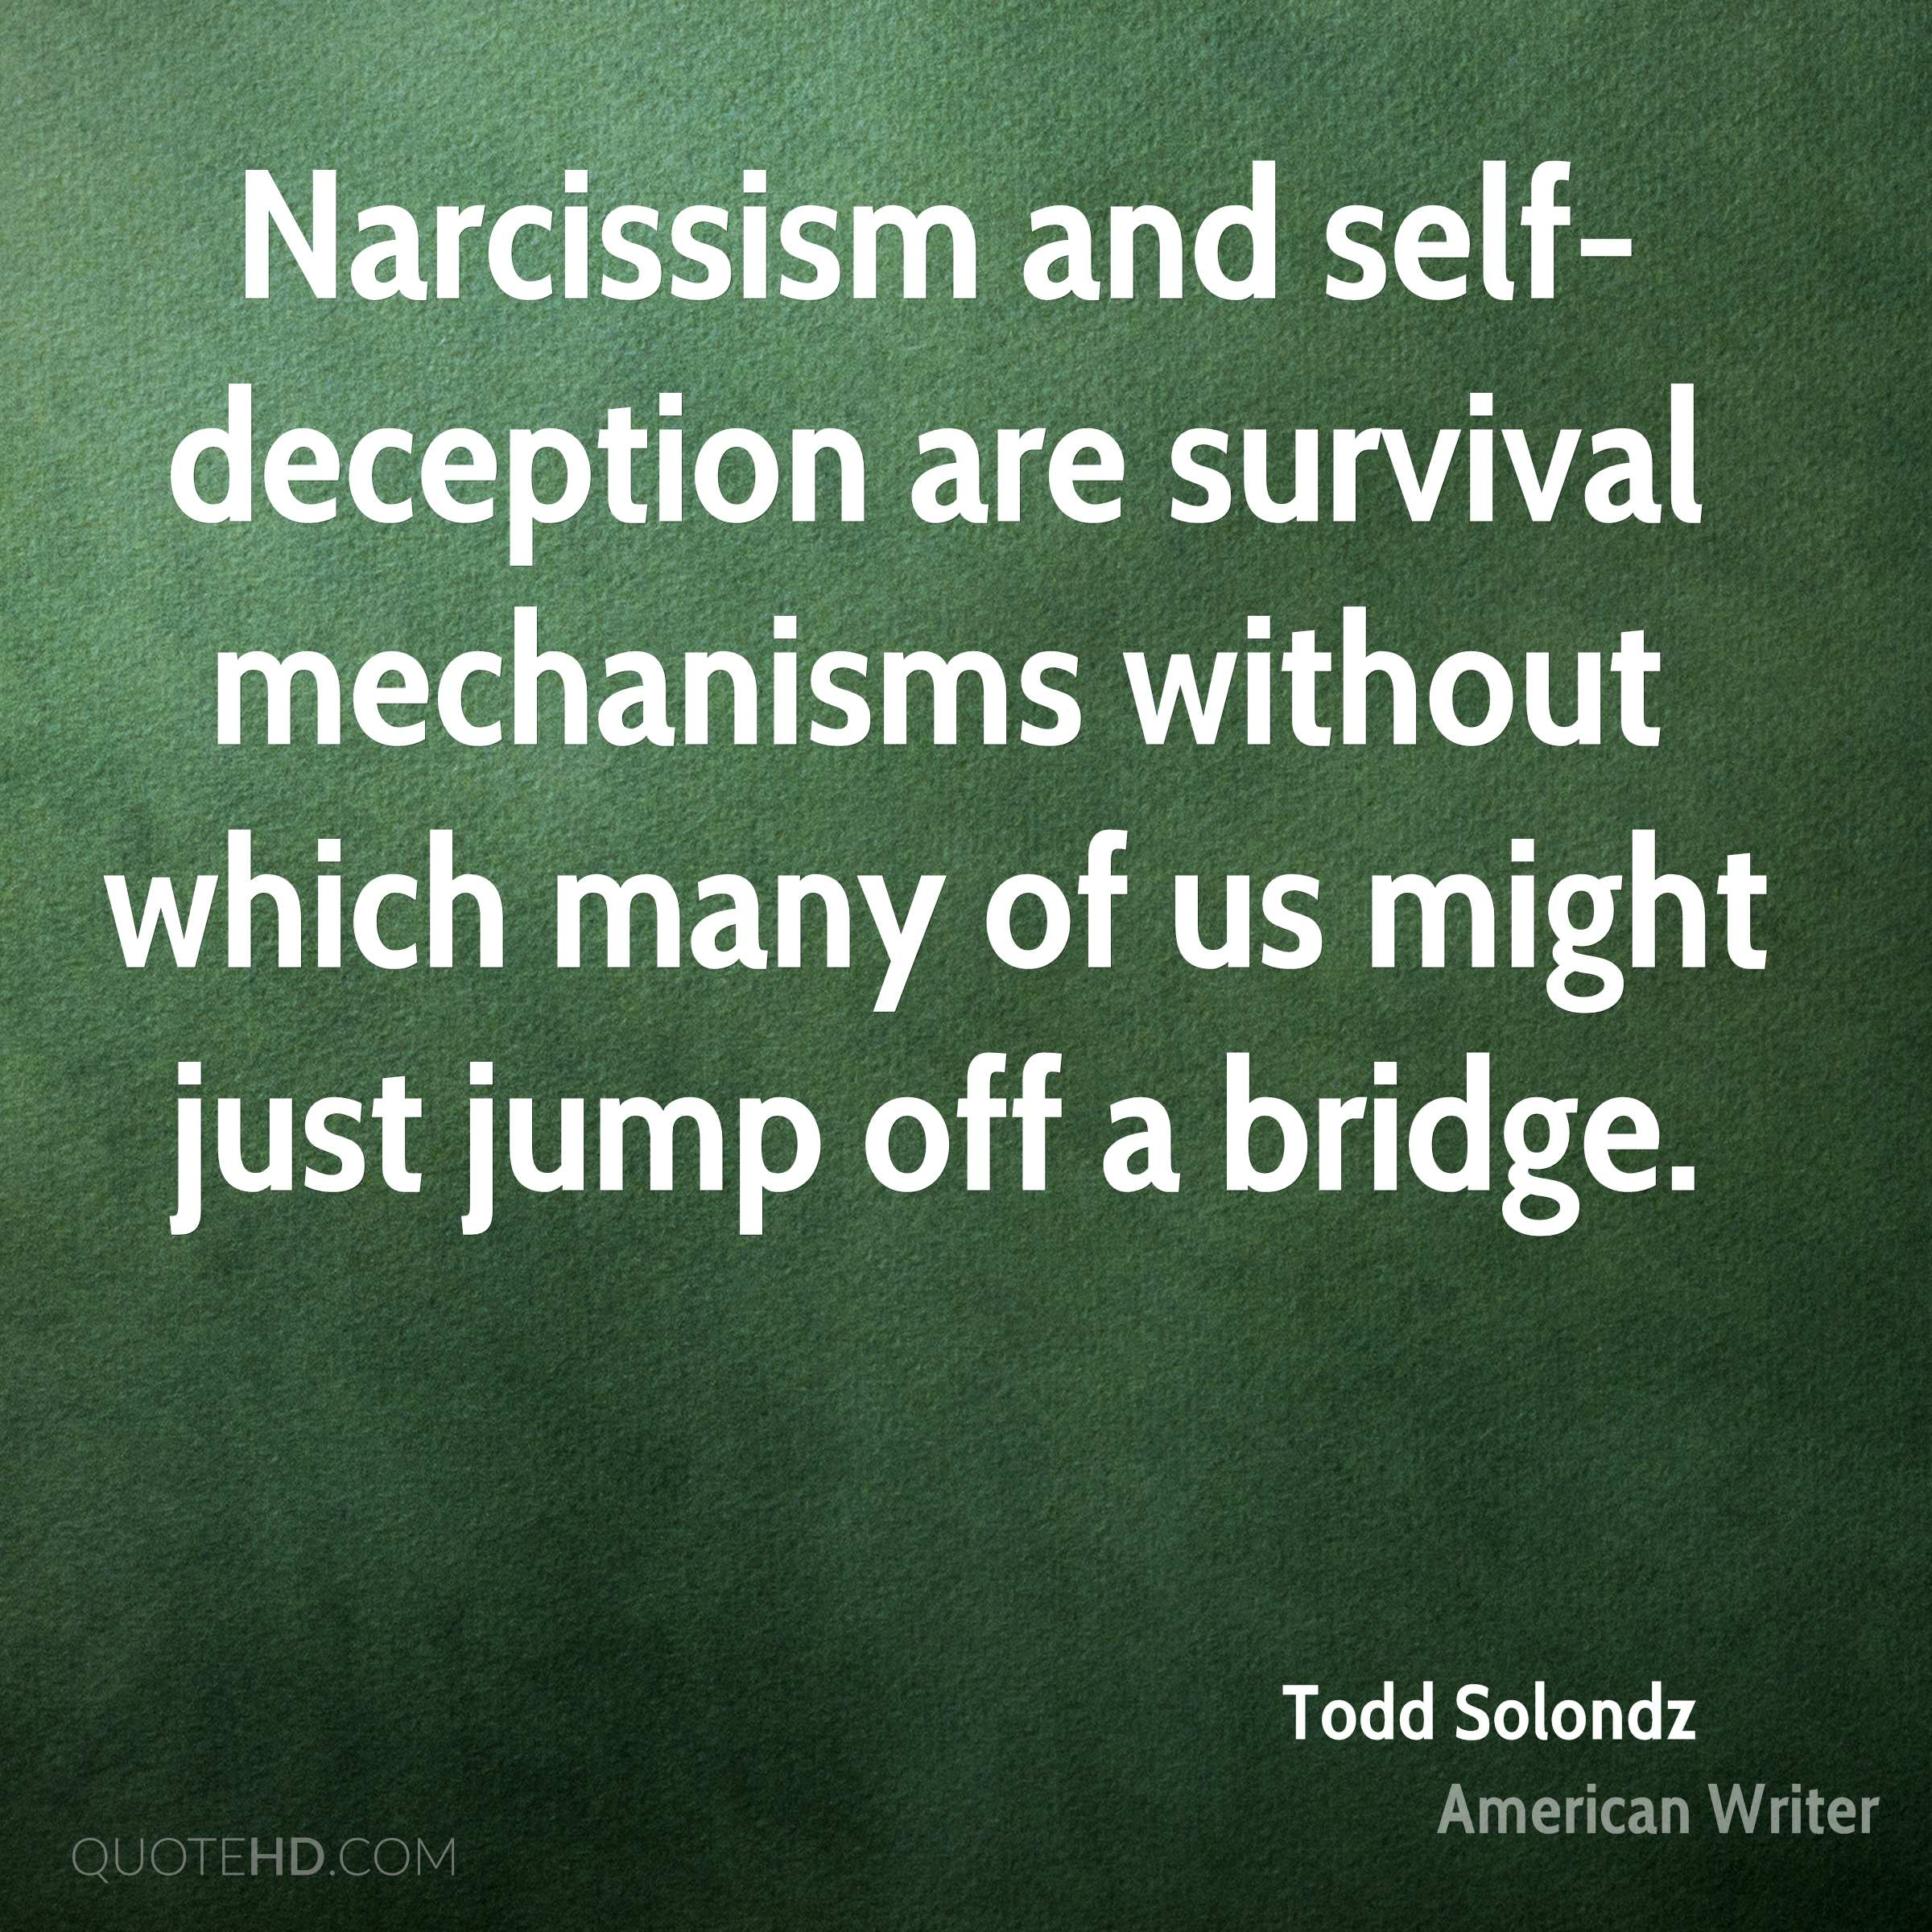 Narcissism and self-deception are survival mechanisms without which many of us might just jump off a bridge.